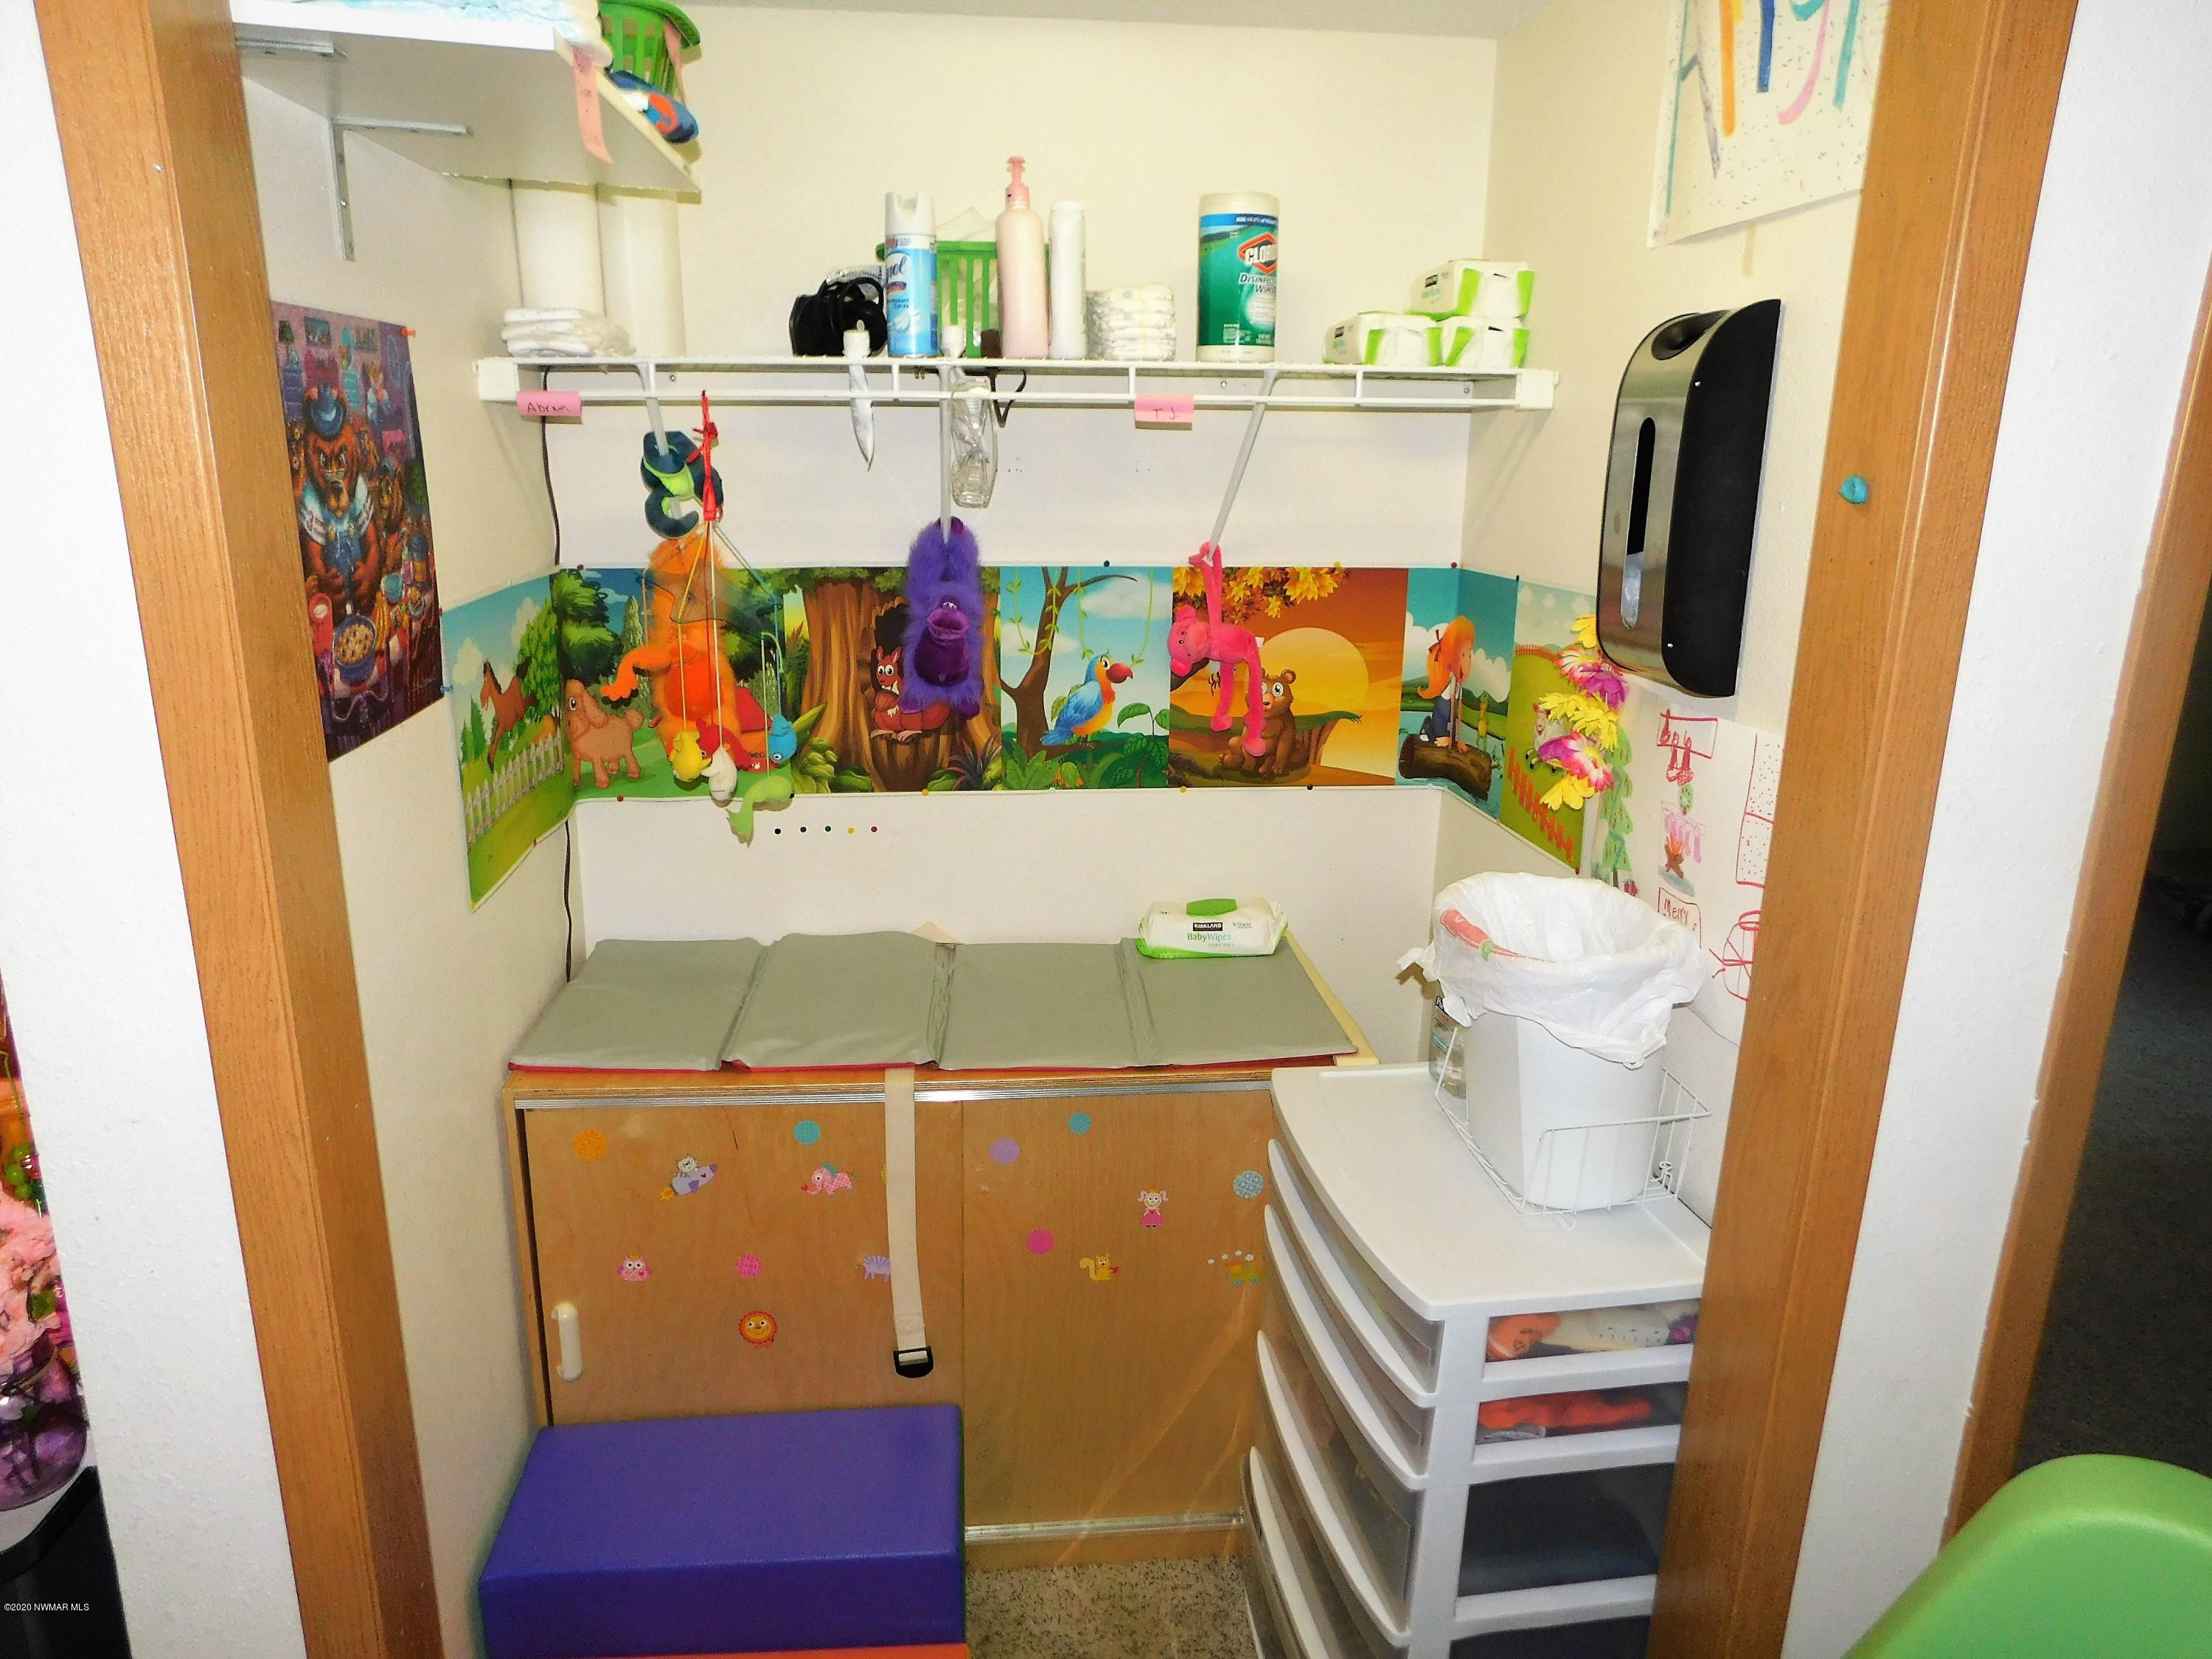 Closet converted to changing area. Great use of space for Daycare or put the door back on and you have a great space for storage.